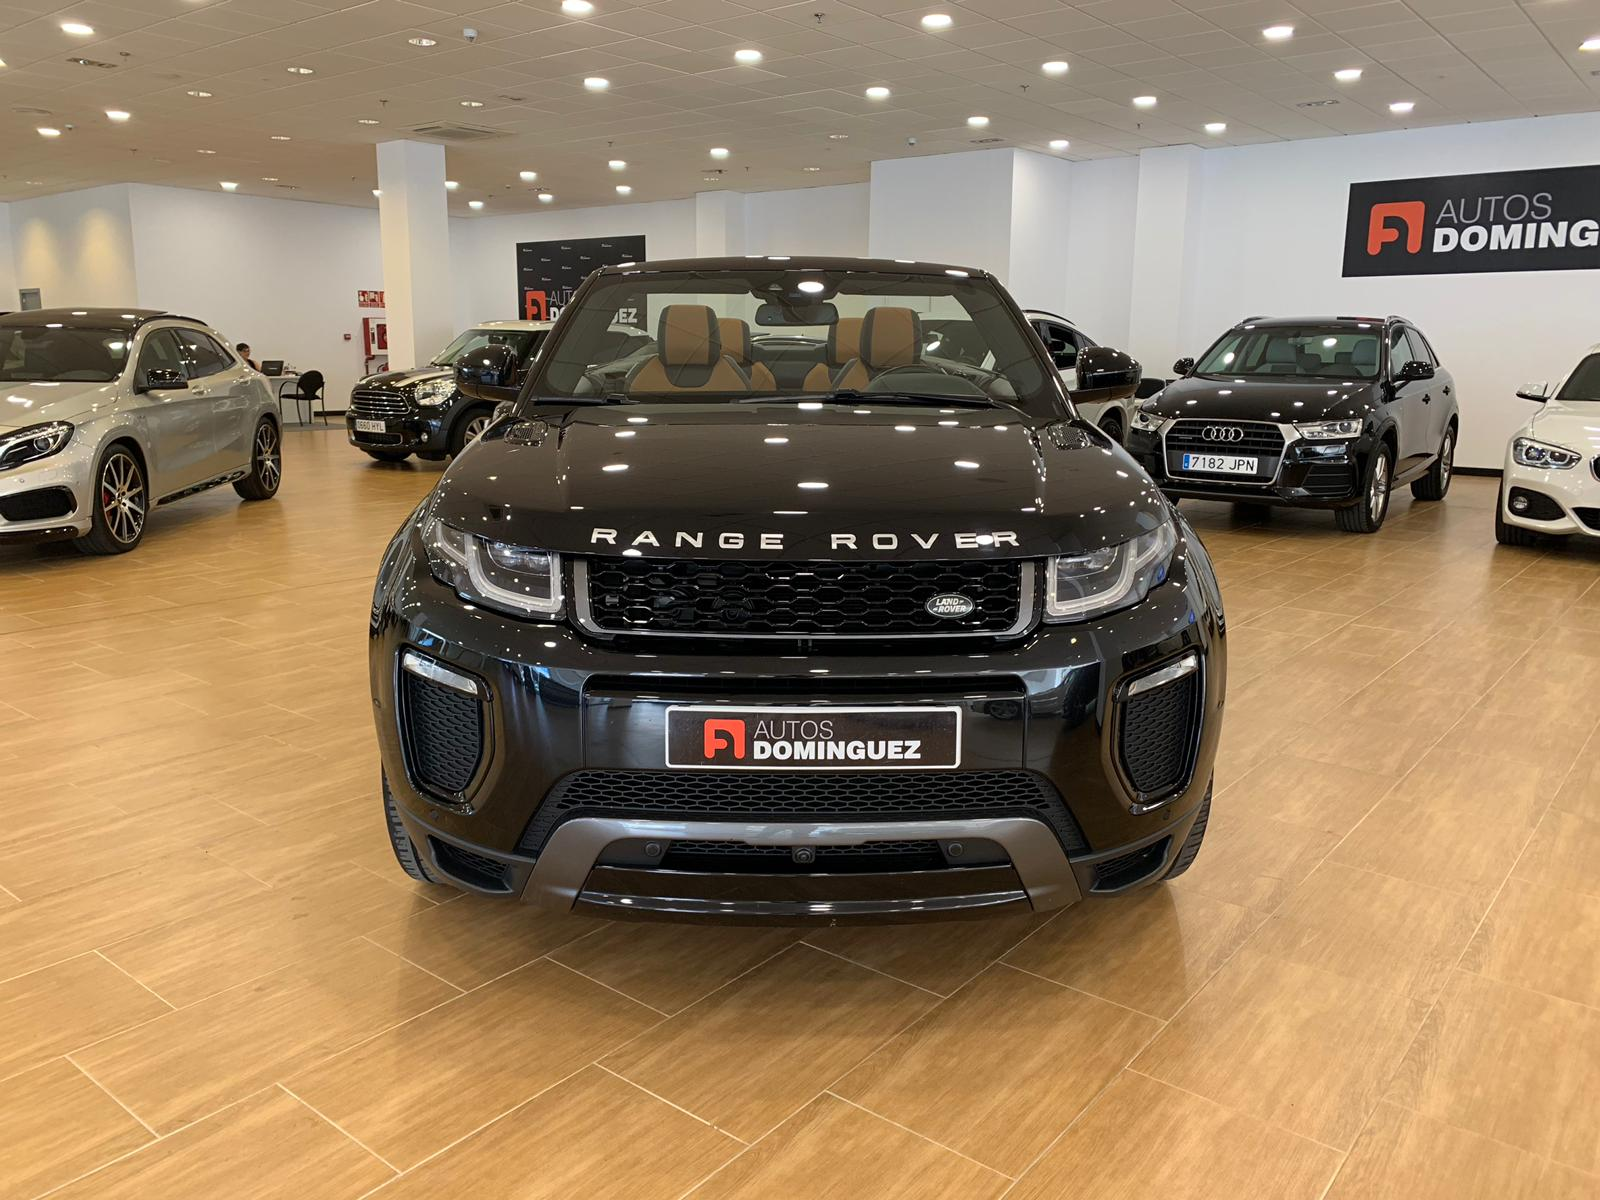 LAND ROVER RANGE ROVER EVOQUE COVERTIBLE 2.0TD4 HSE DYNAMIC 4WD 180 CV AUTO